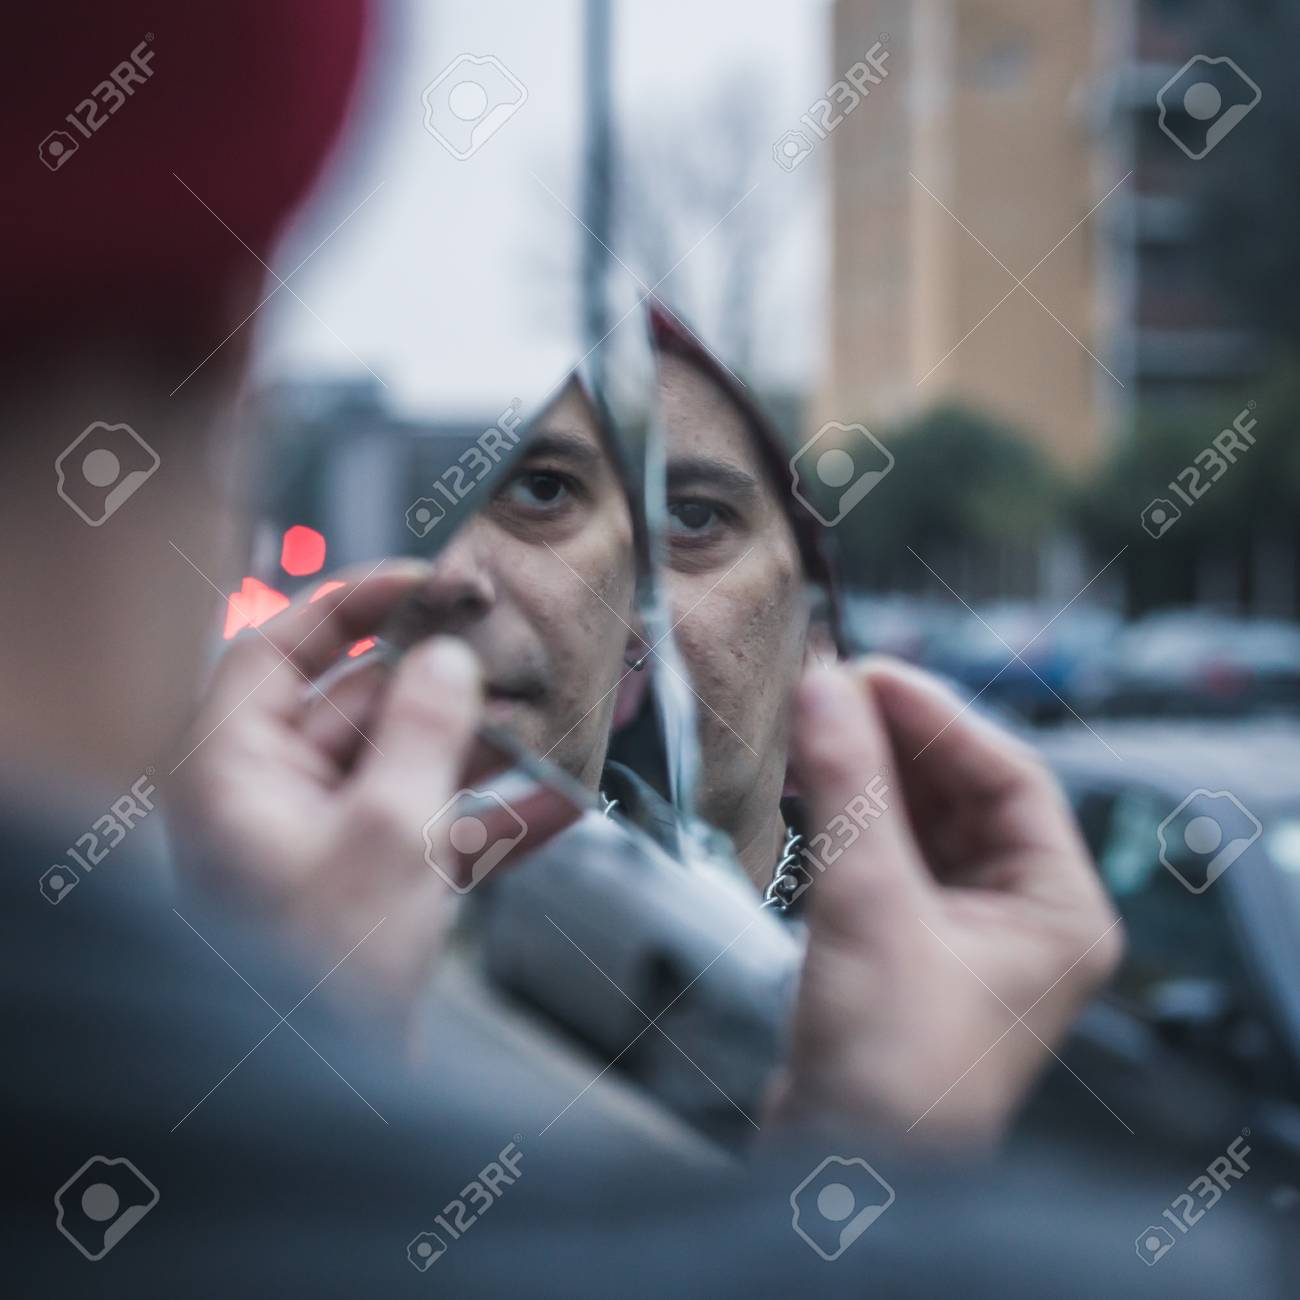 203f719c3b0 Punk guy looking at himself in a shattered mirror in the city streets Stock  Photo -